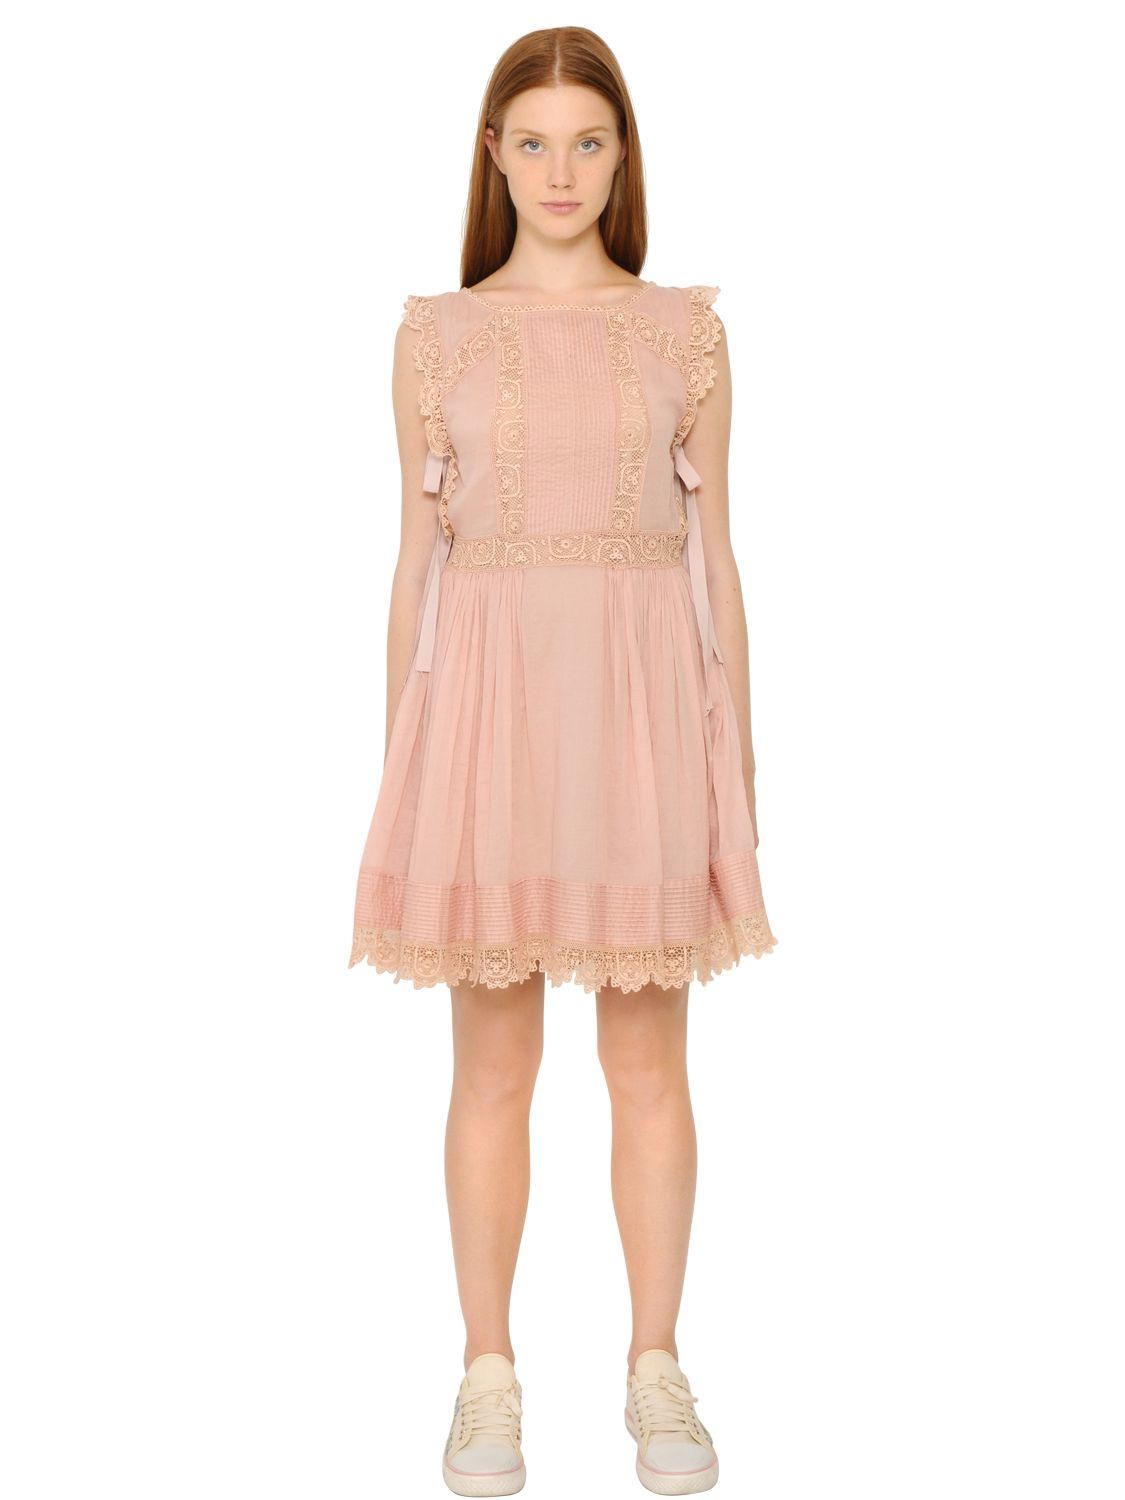 Red Valentino Spring 2016: Red Valentino Cotton Voile & Crochet Lace Dress In Pink